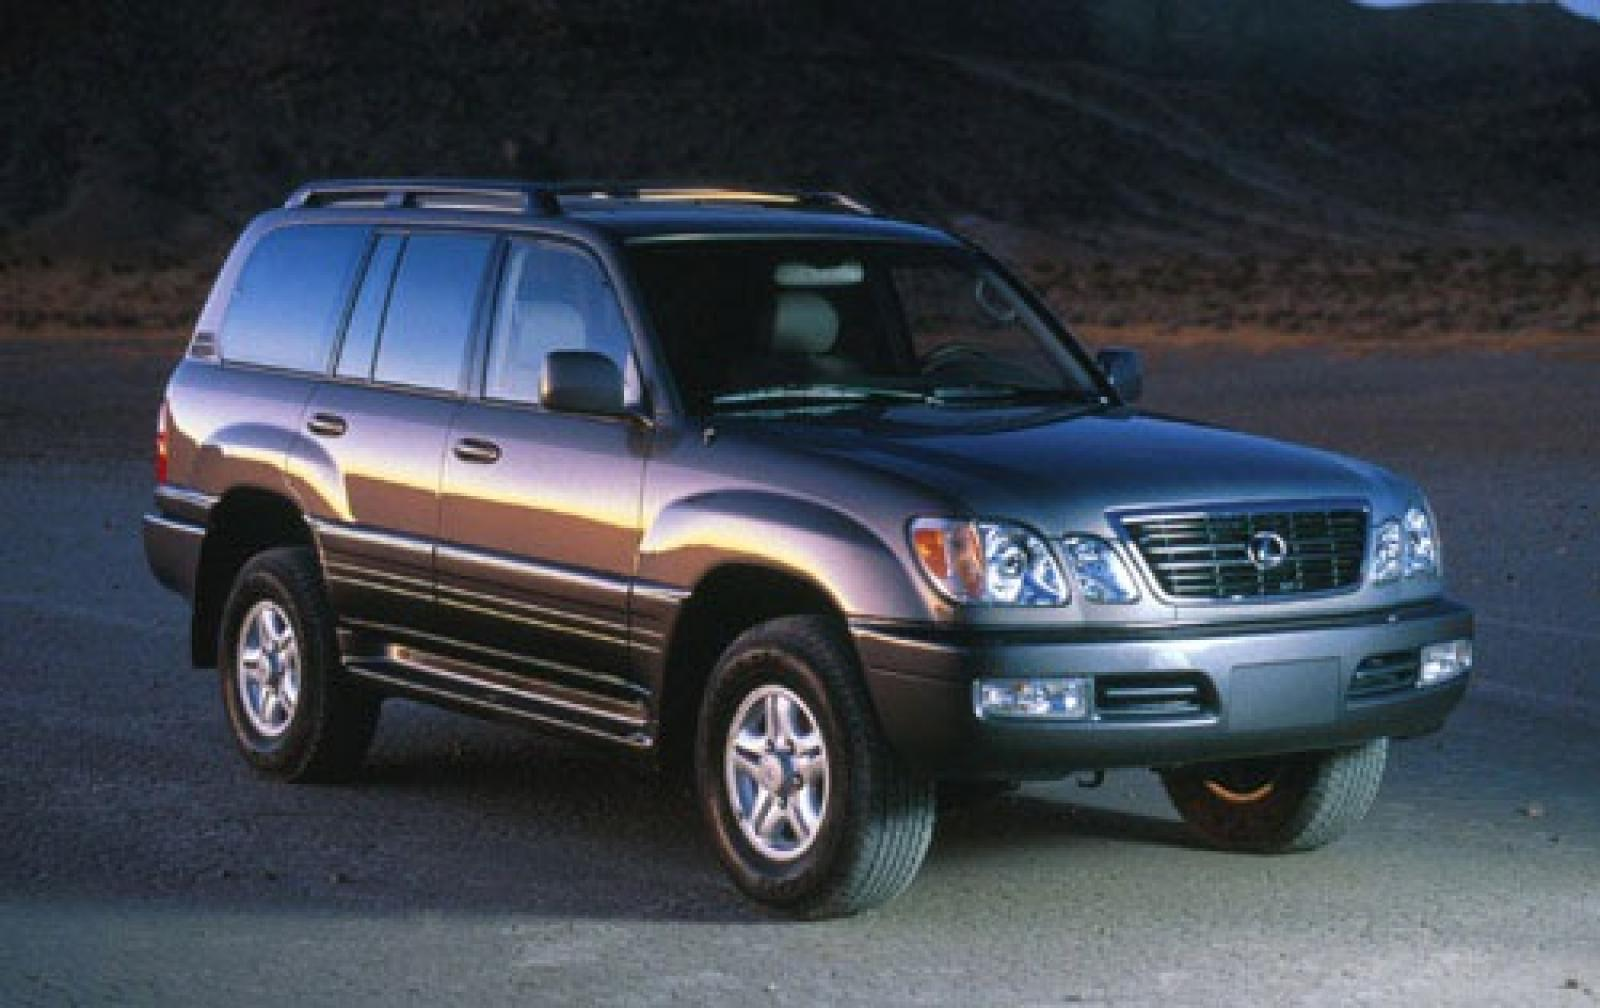 2001 lexus lx 470 information and photos zombiedrive. Black Bedroom Furniture Sets. Home Design Ideas